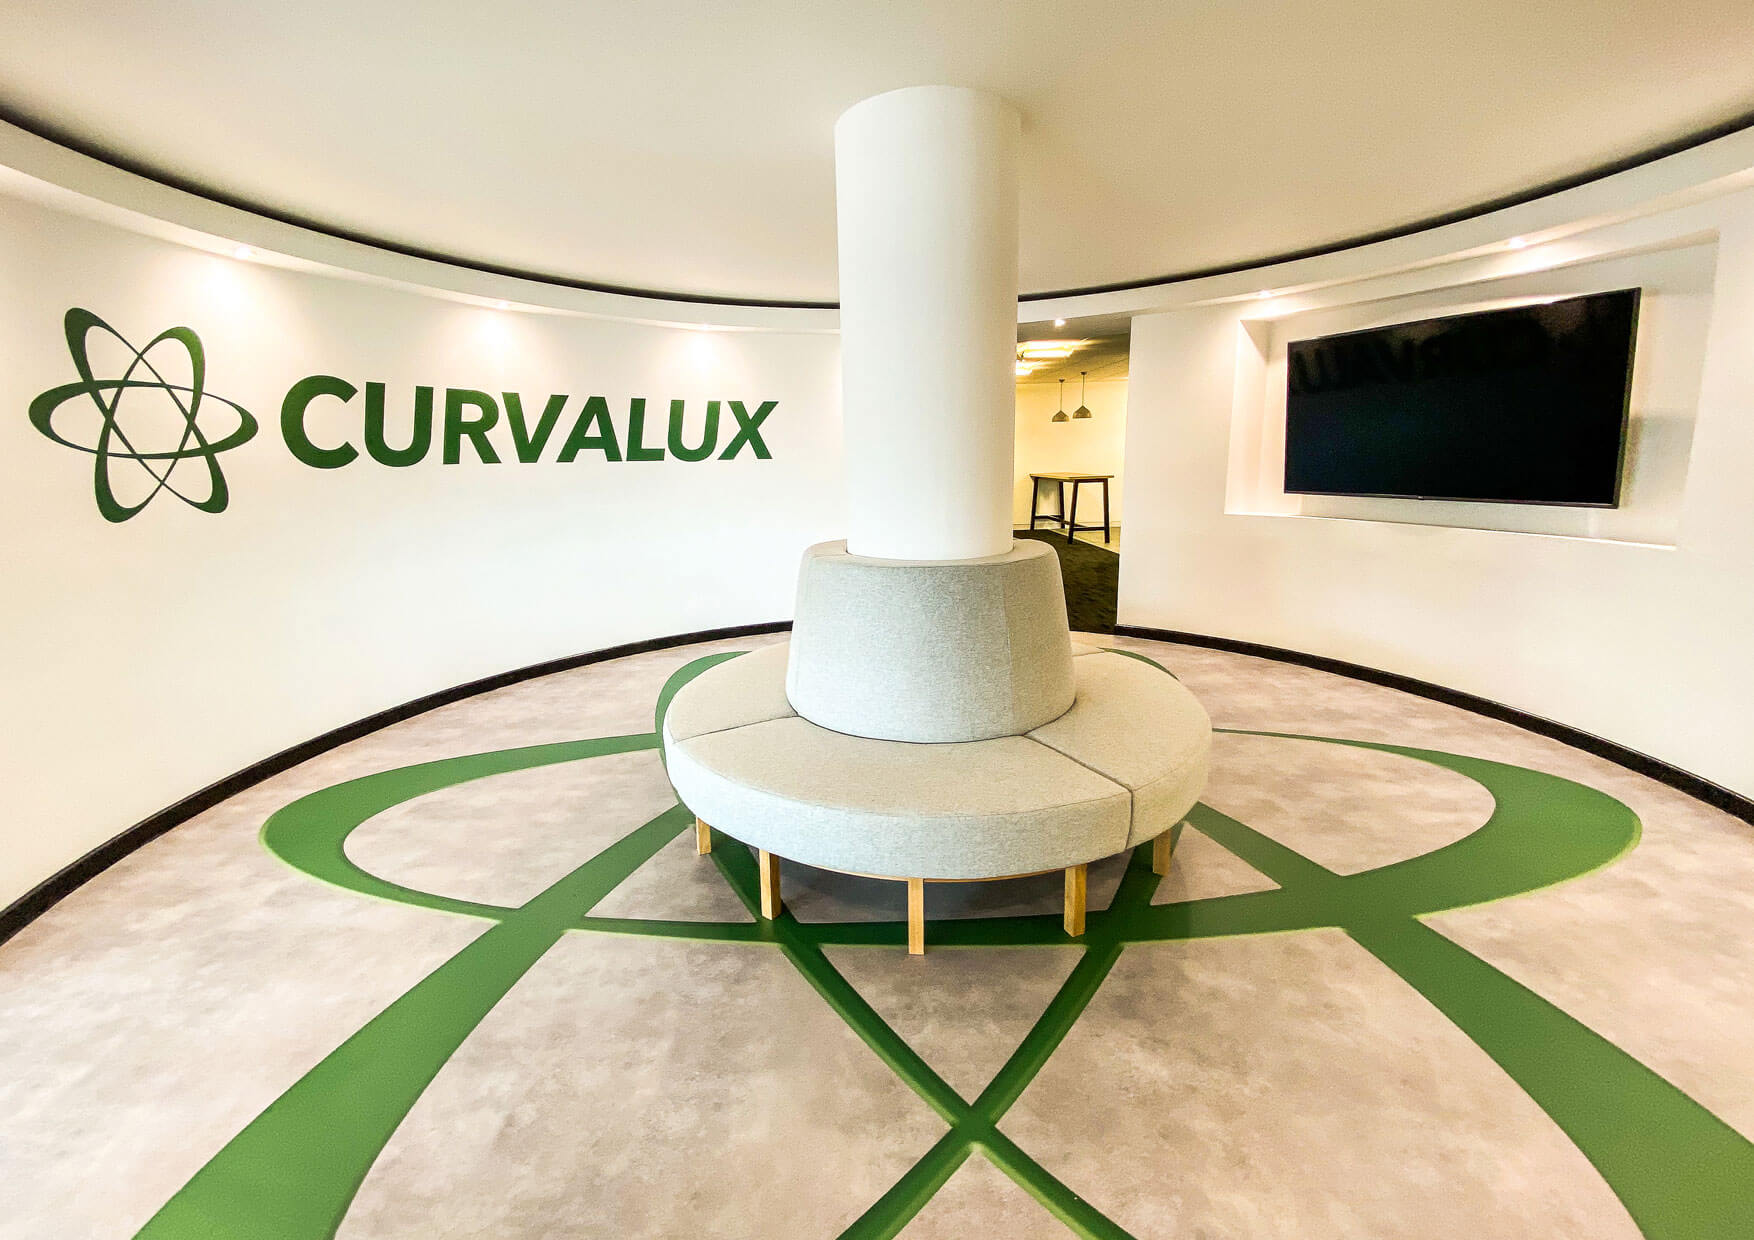 Curvalux Central Feature space